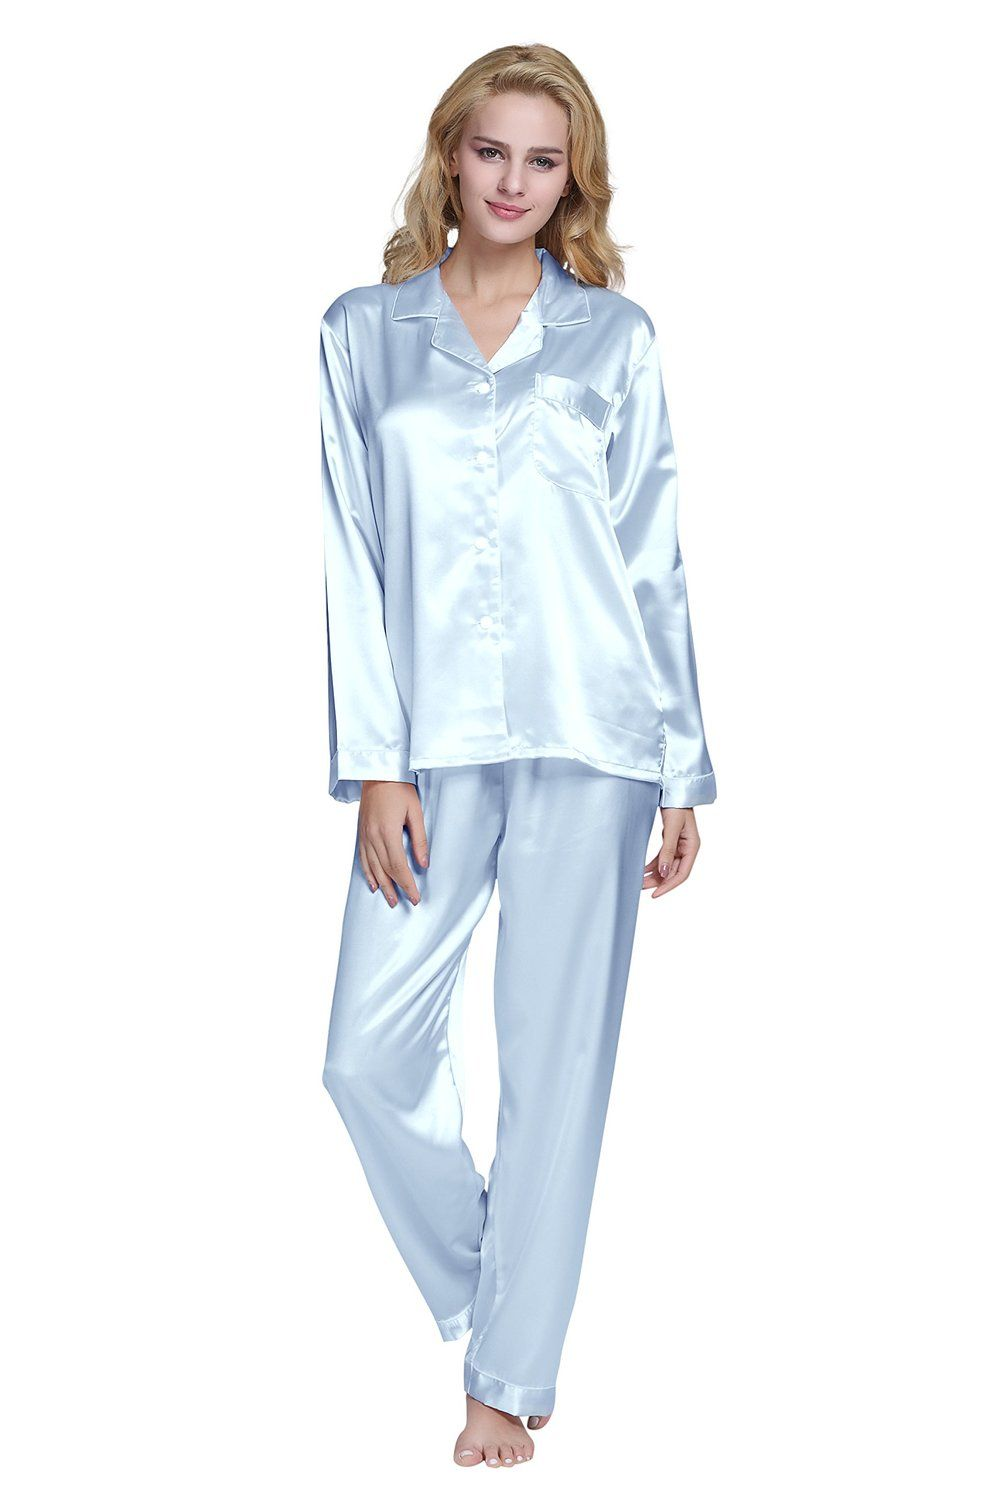 c6e76b56adc2 TONY & CANDICE Women's PJ's Classic Satin Pyjama Set: Amazon.co.uk: Clothing